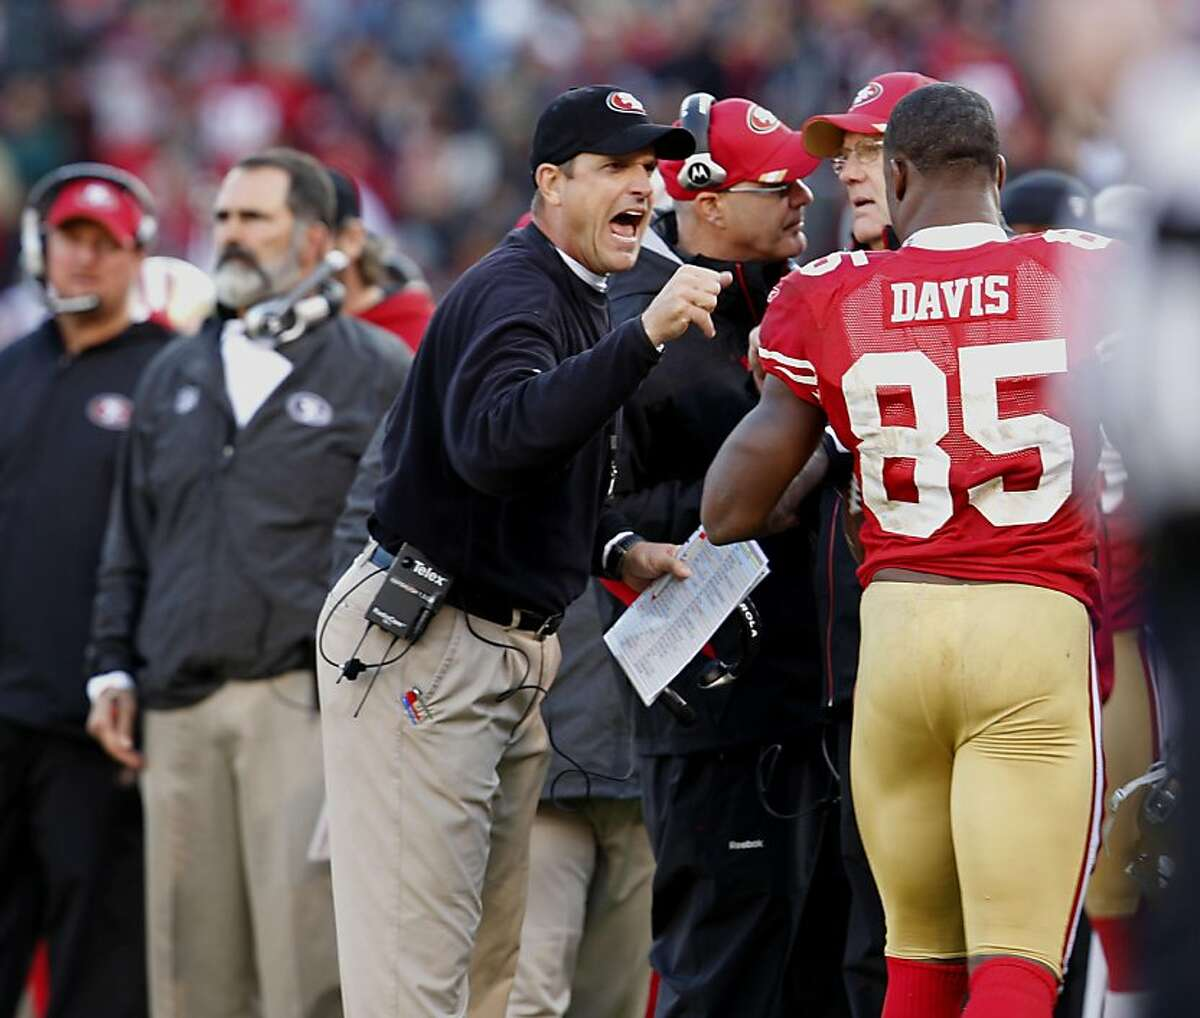 San Francisco 49ers head coach Jim Harbaugh congratulates Vernon Davis after he scores in the second half of the game against the Arizona Cardinals, Sunday November 20, 2011, at Candlestick Park in San Francisco, Calif.